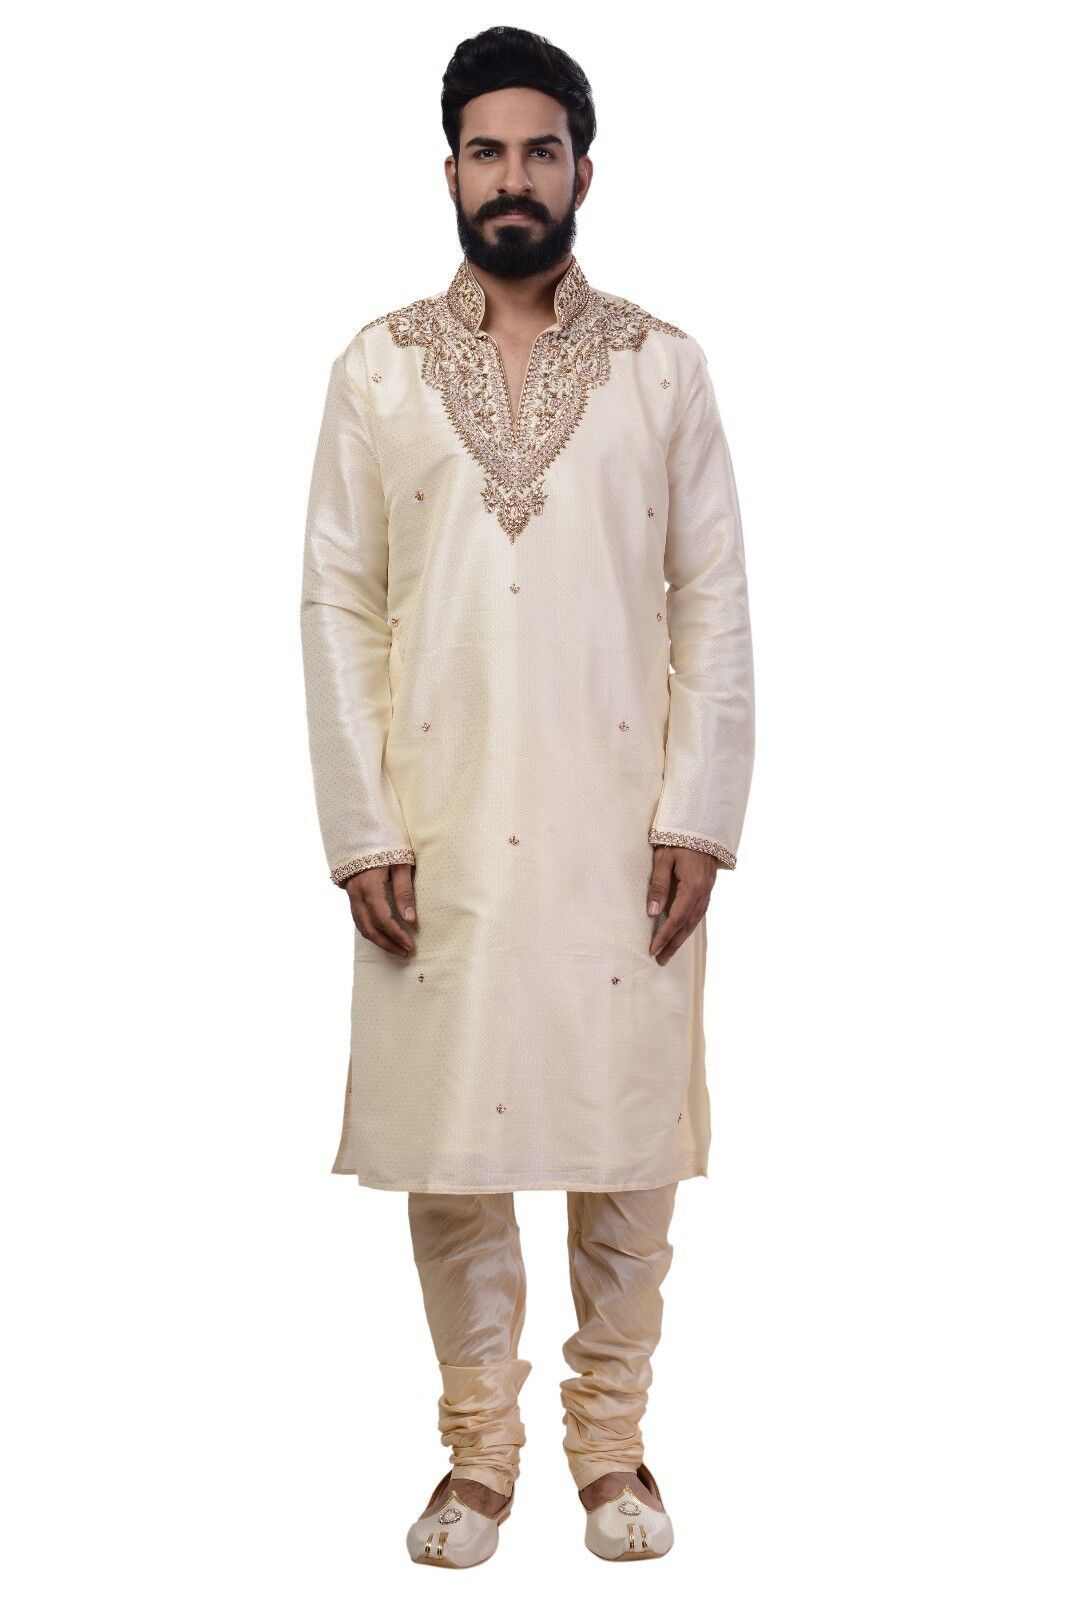 Ethnic Indian Design Kurta Sherwani for Men 2pc Suit's (Worldwide Postage)